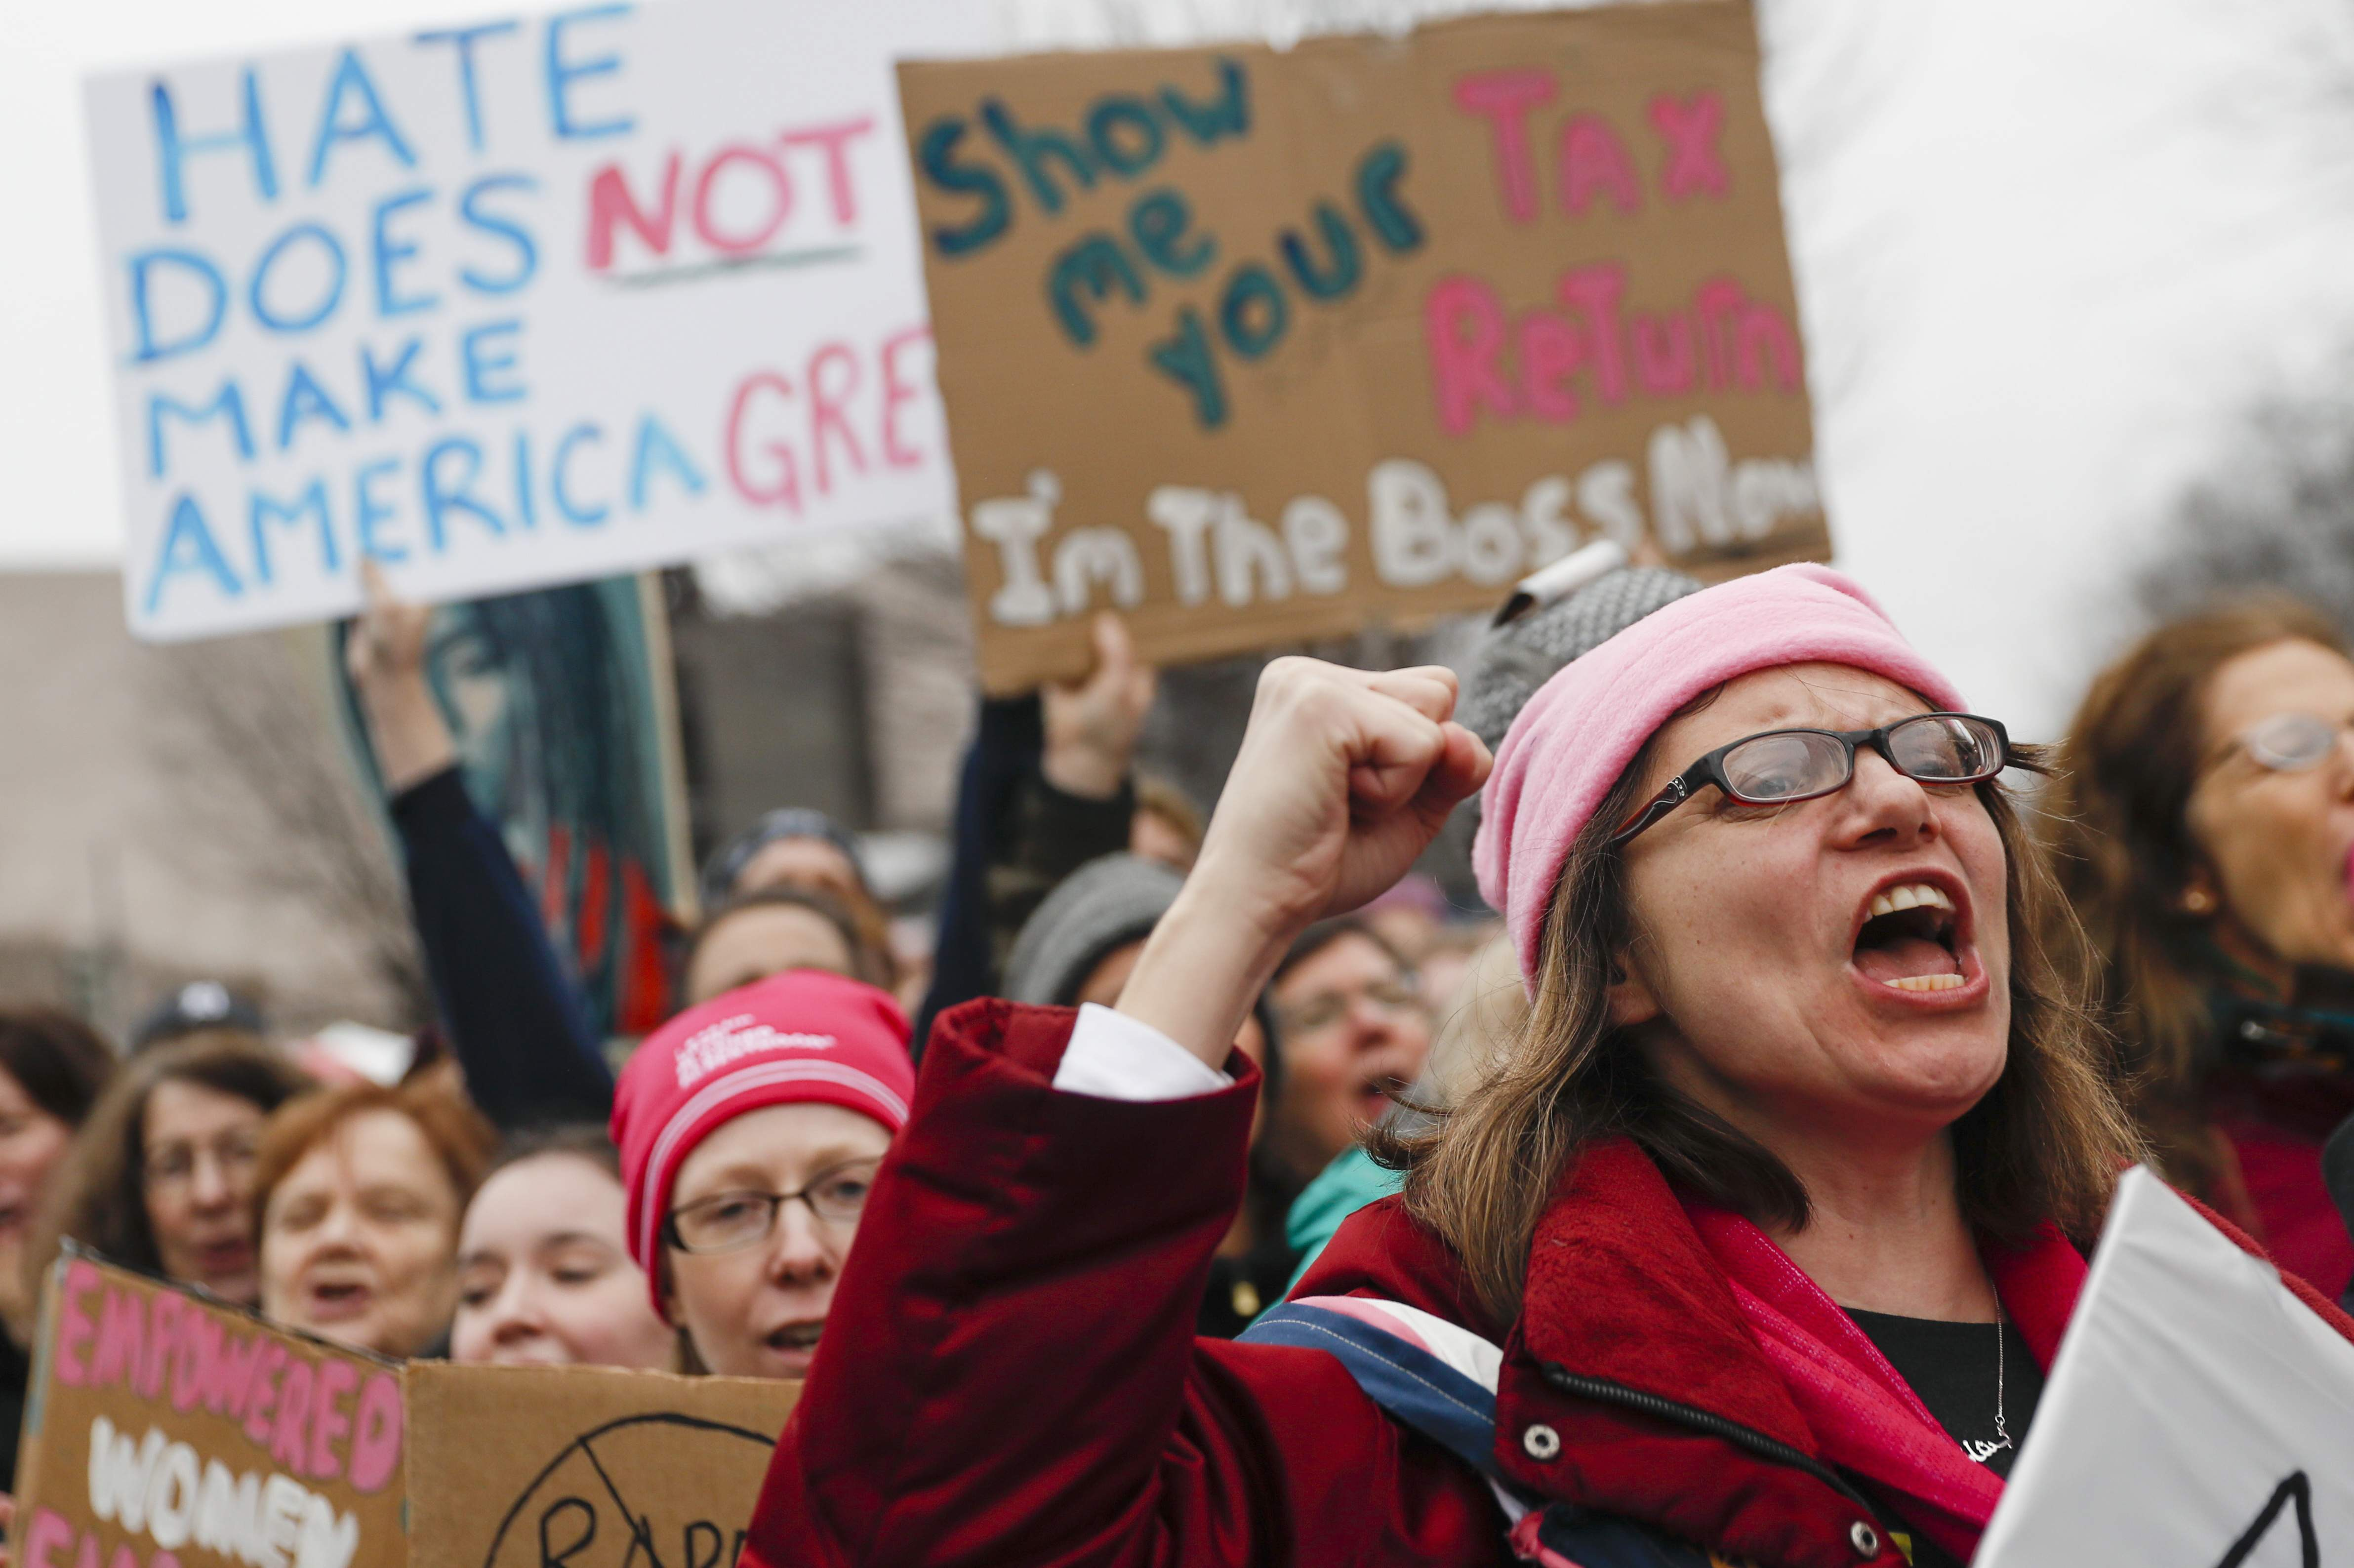 Protesters cheer at the Women's March on Washington during the first full day of Donald Trump's presidency, Saturday, Jan. 21, 2017 in Washington. THE ASSOCIATED PRESS